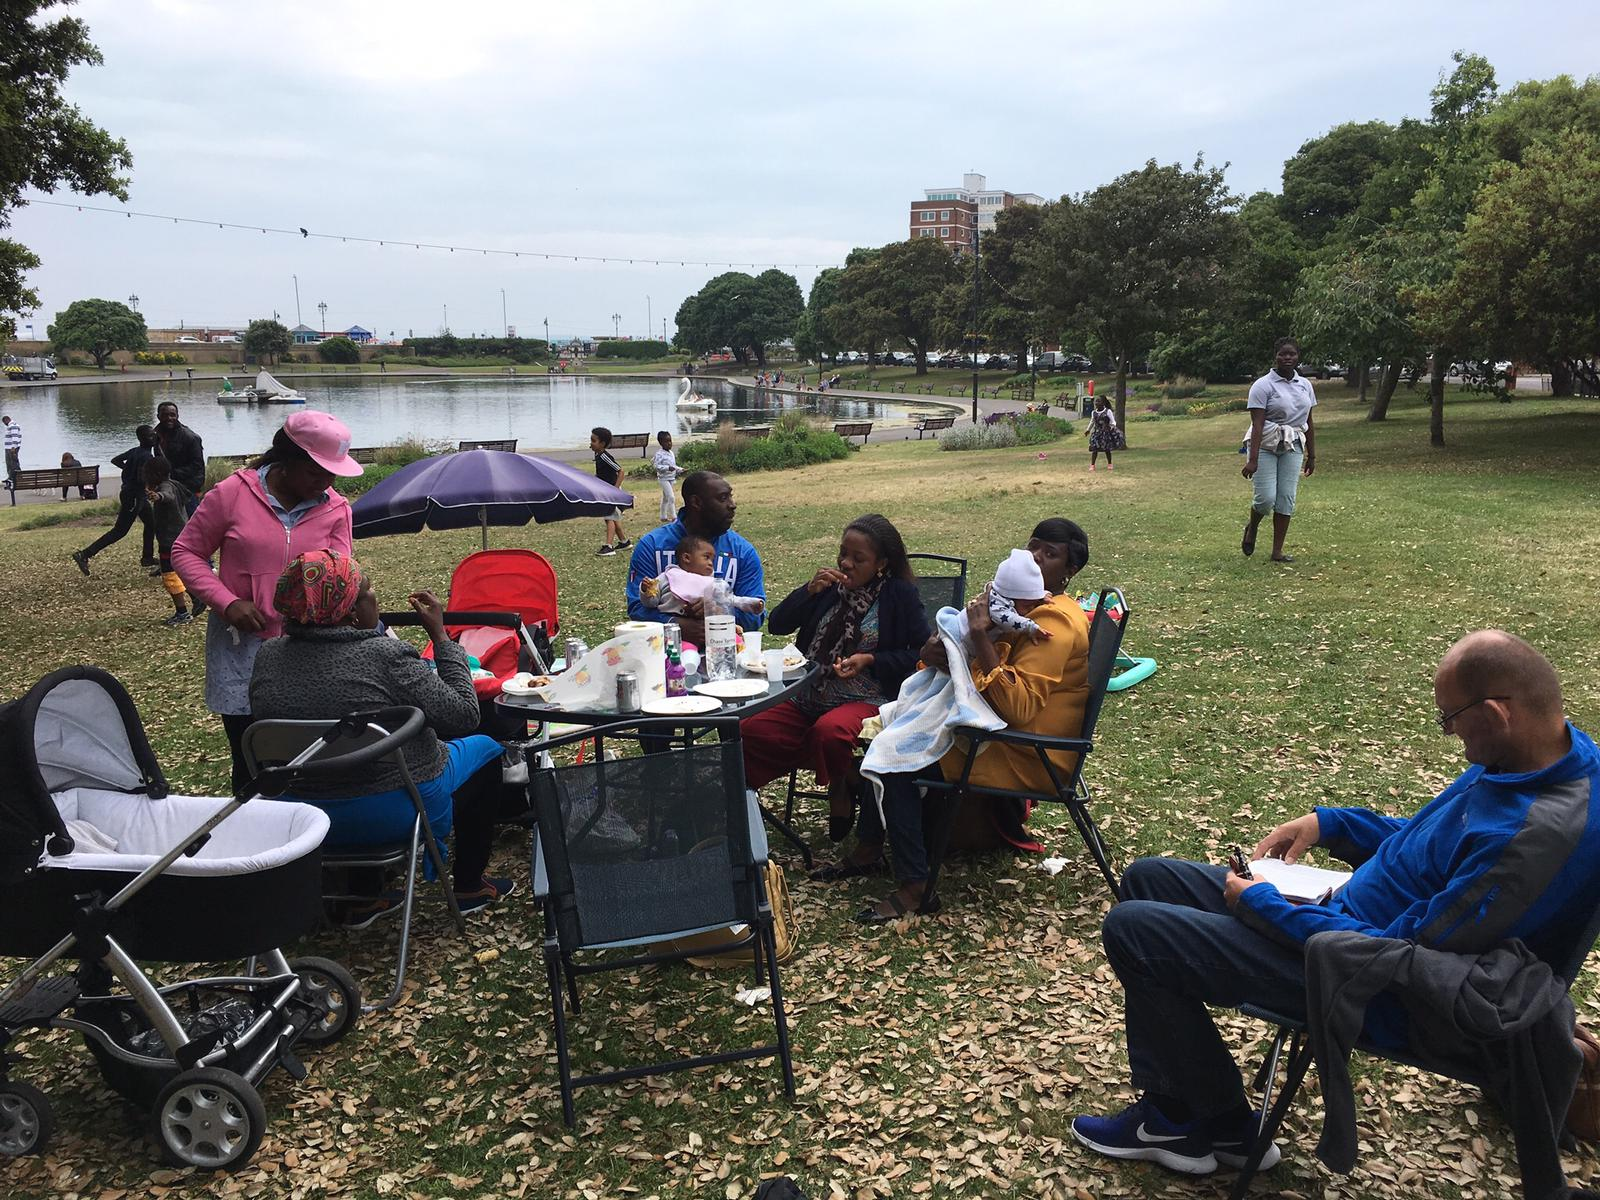 2018 SUMMER BARBECUE